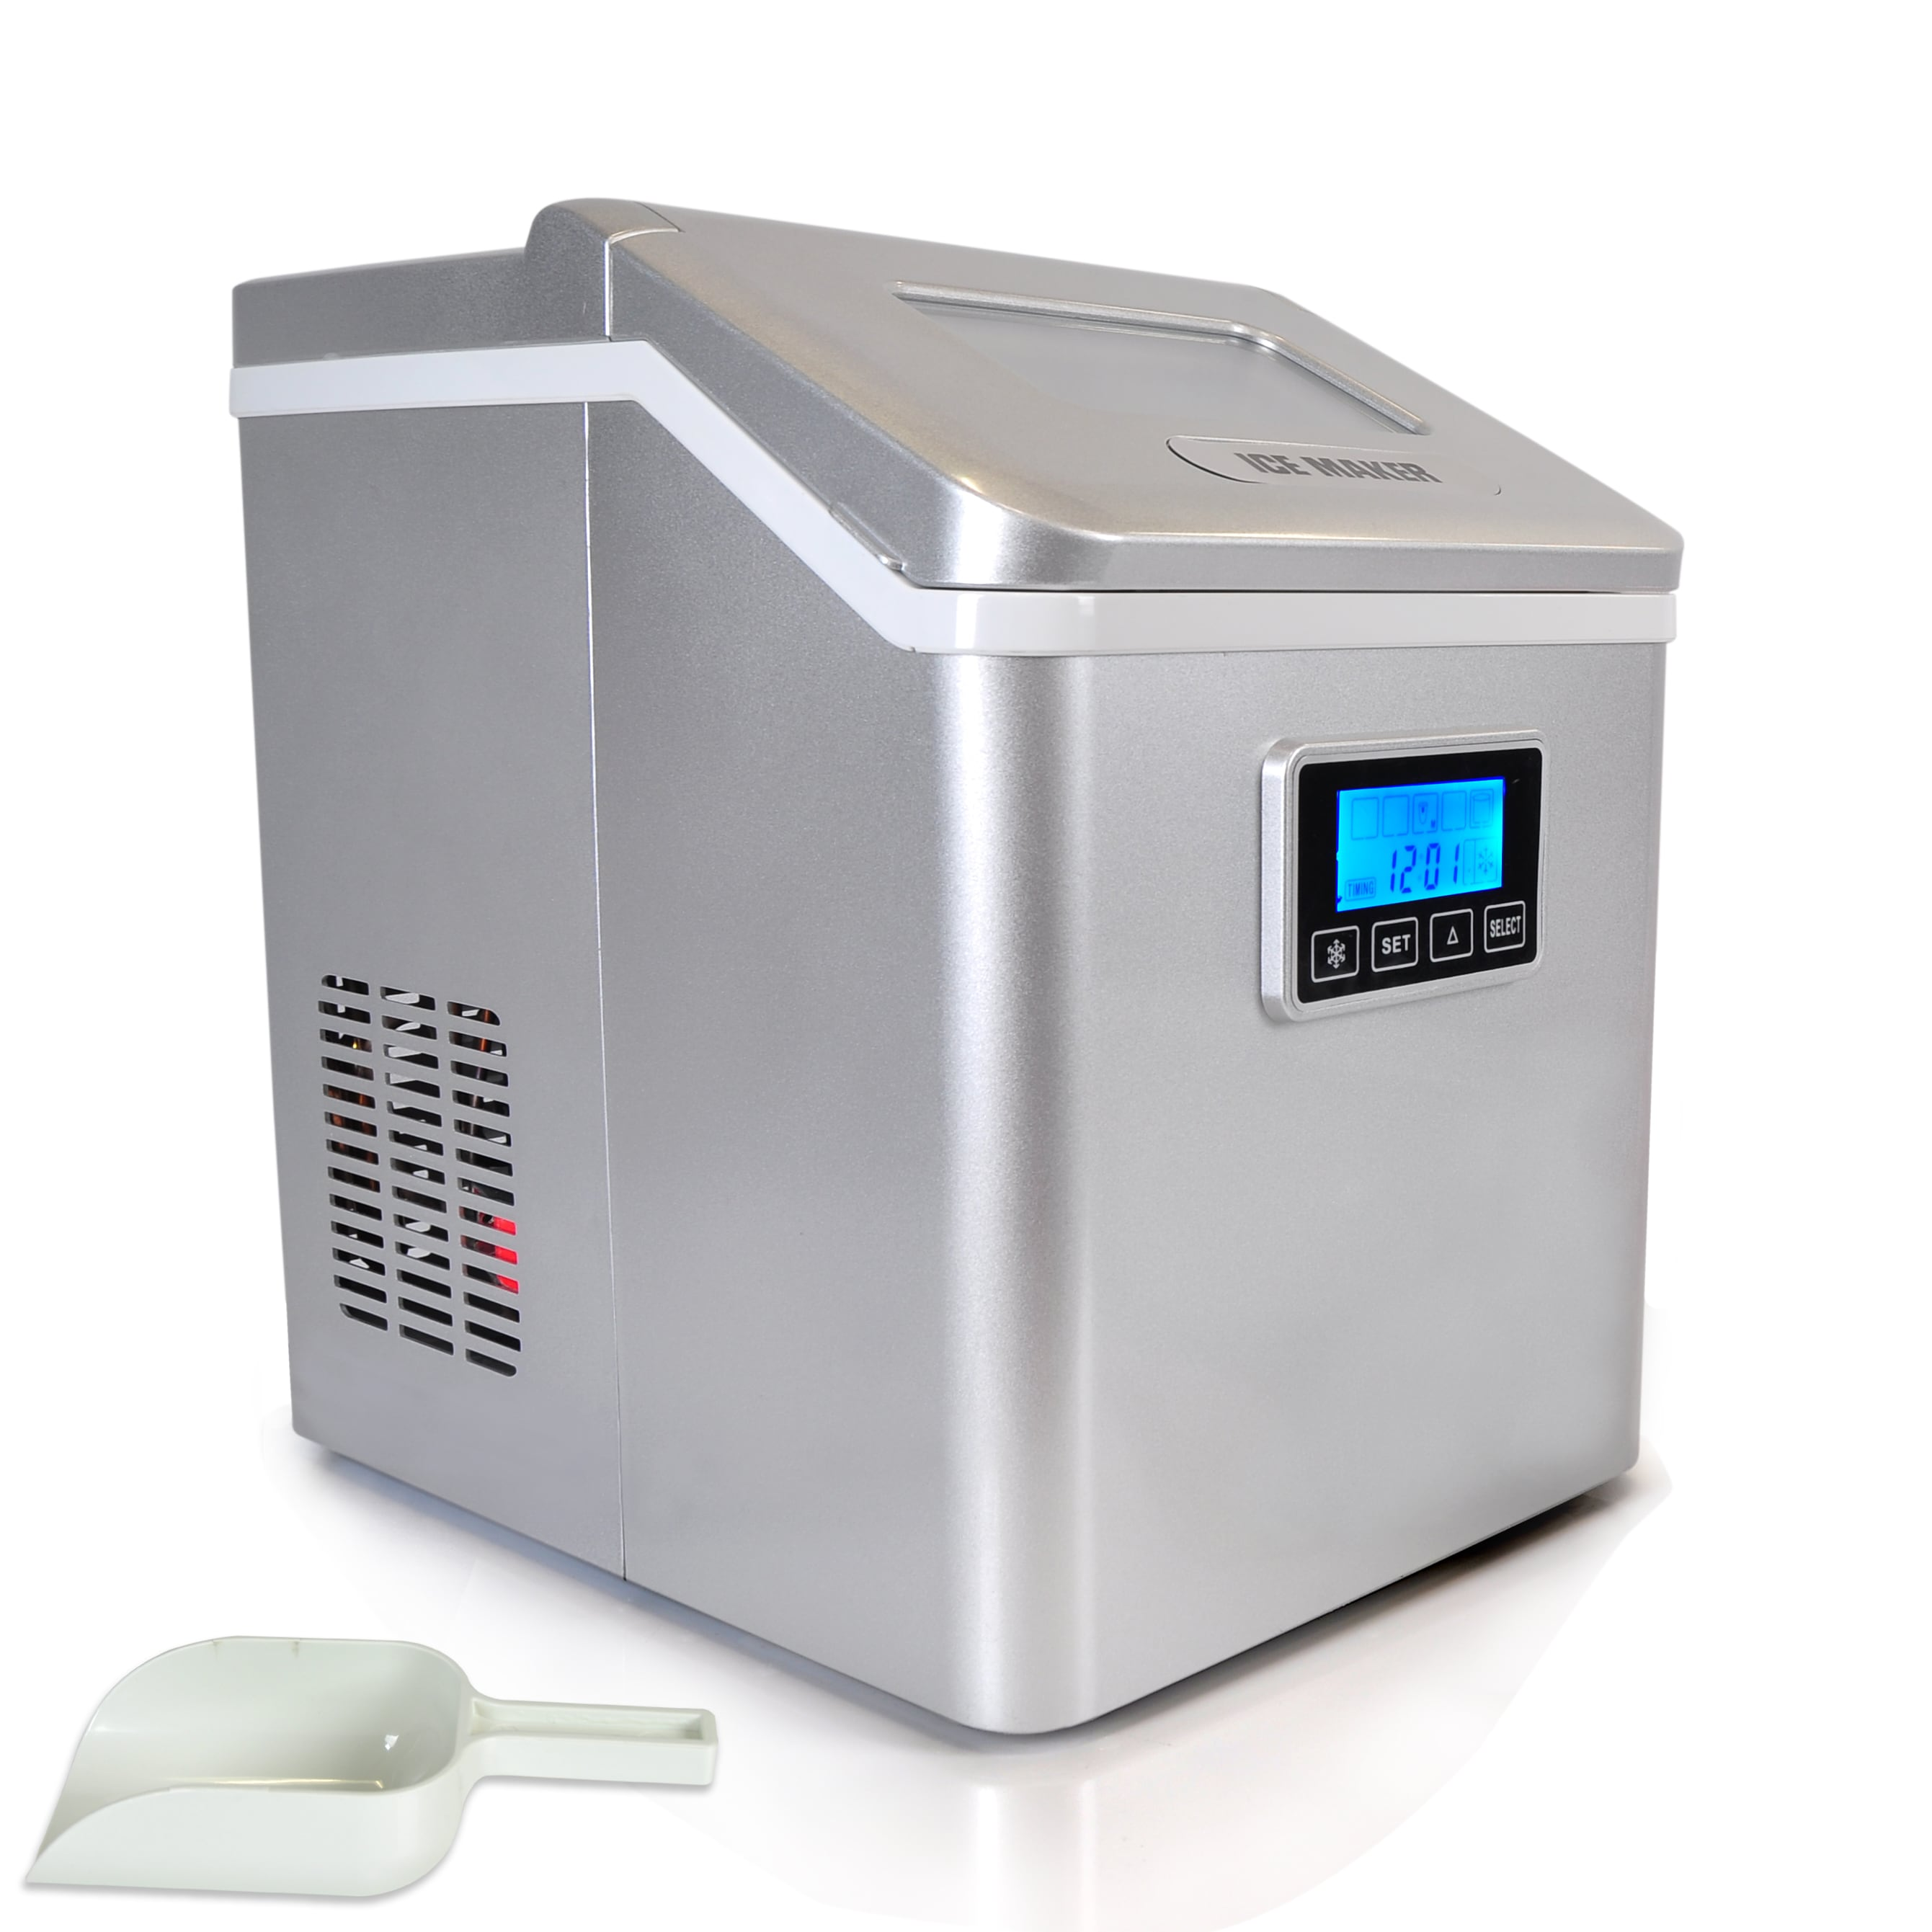 ice maker icemaker whynter and direct dispenser idc product silver connection countertops water countertop